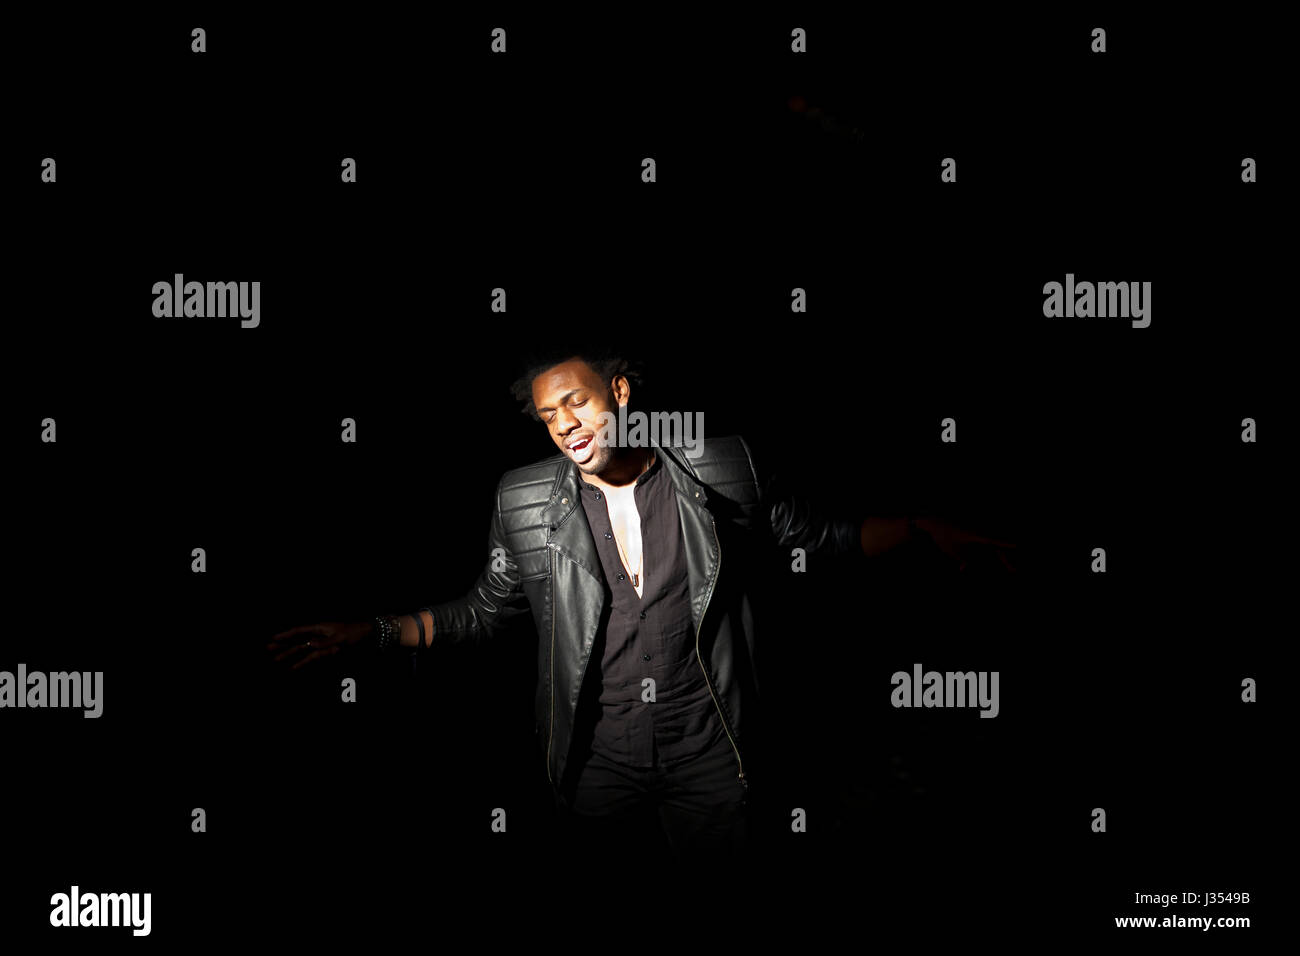 Jeune acteur performing on stage Photo Stock